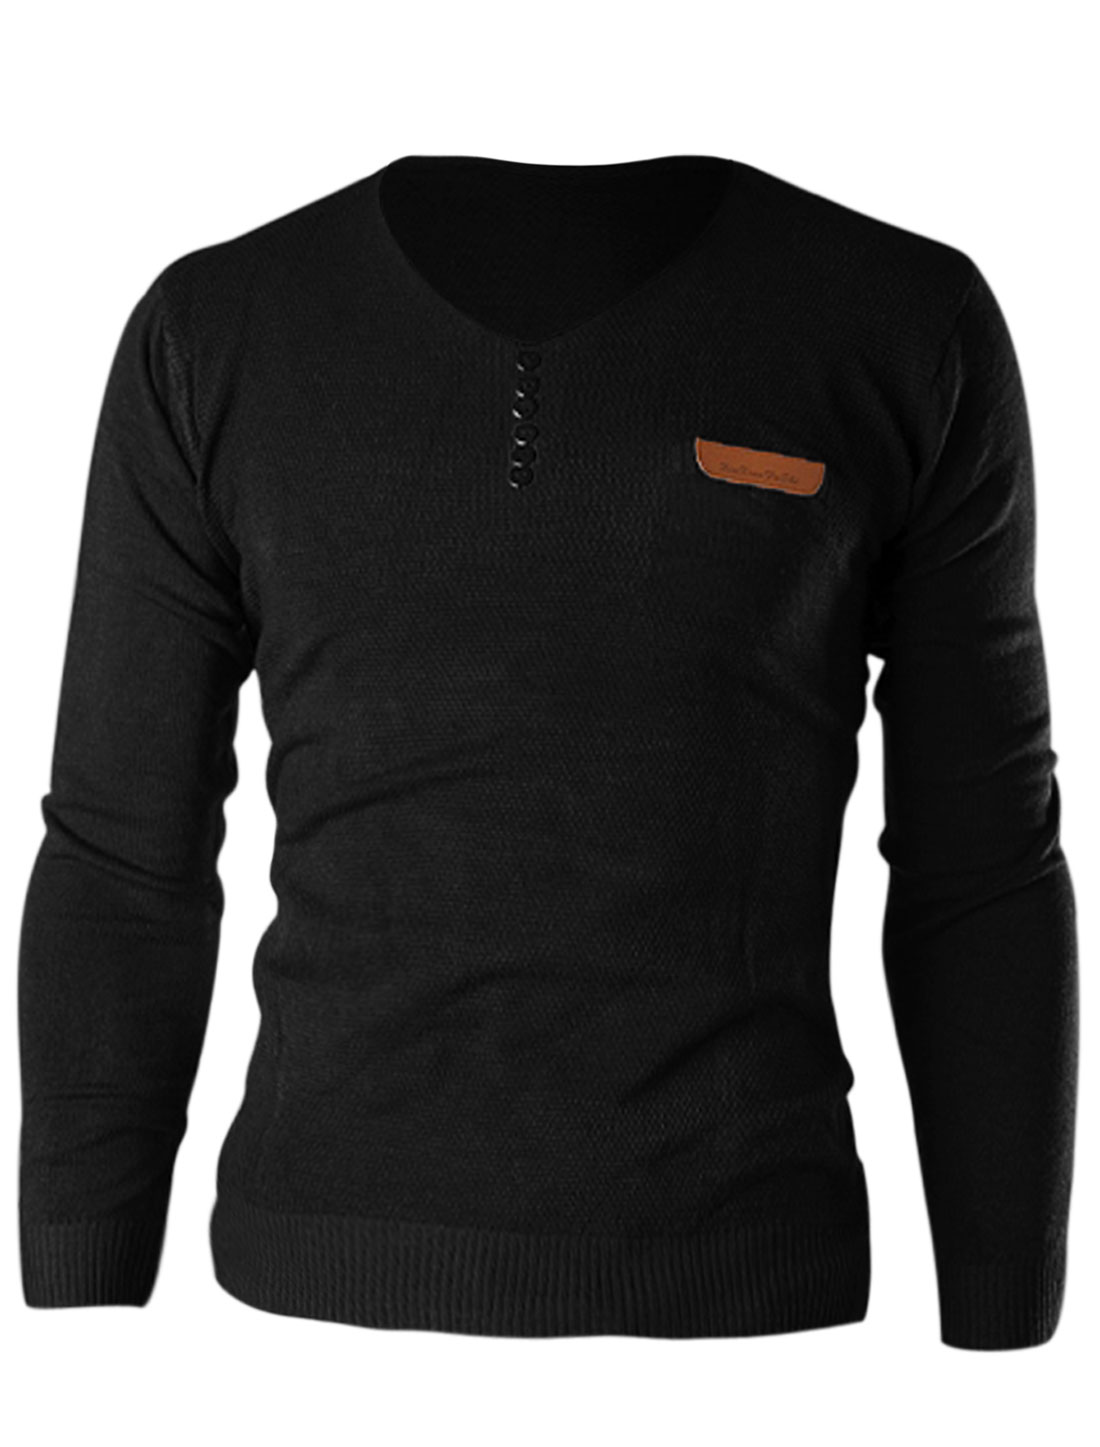 Men V Neck Long Sleeve Button Decor Front Casual Knit Shirt Black M